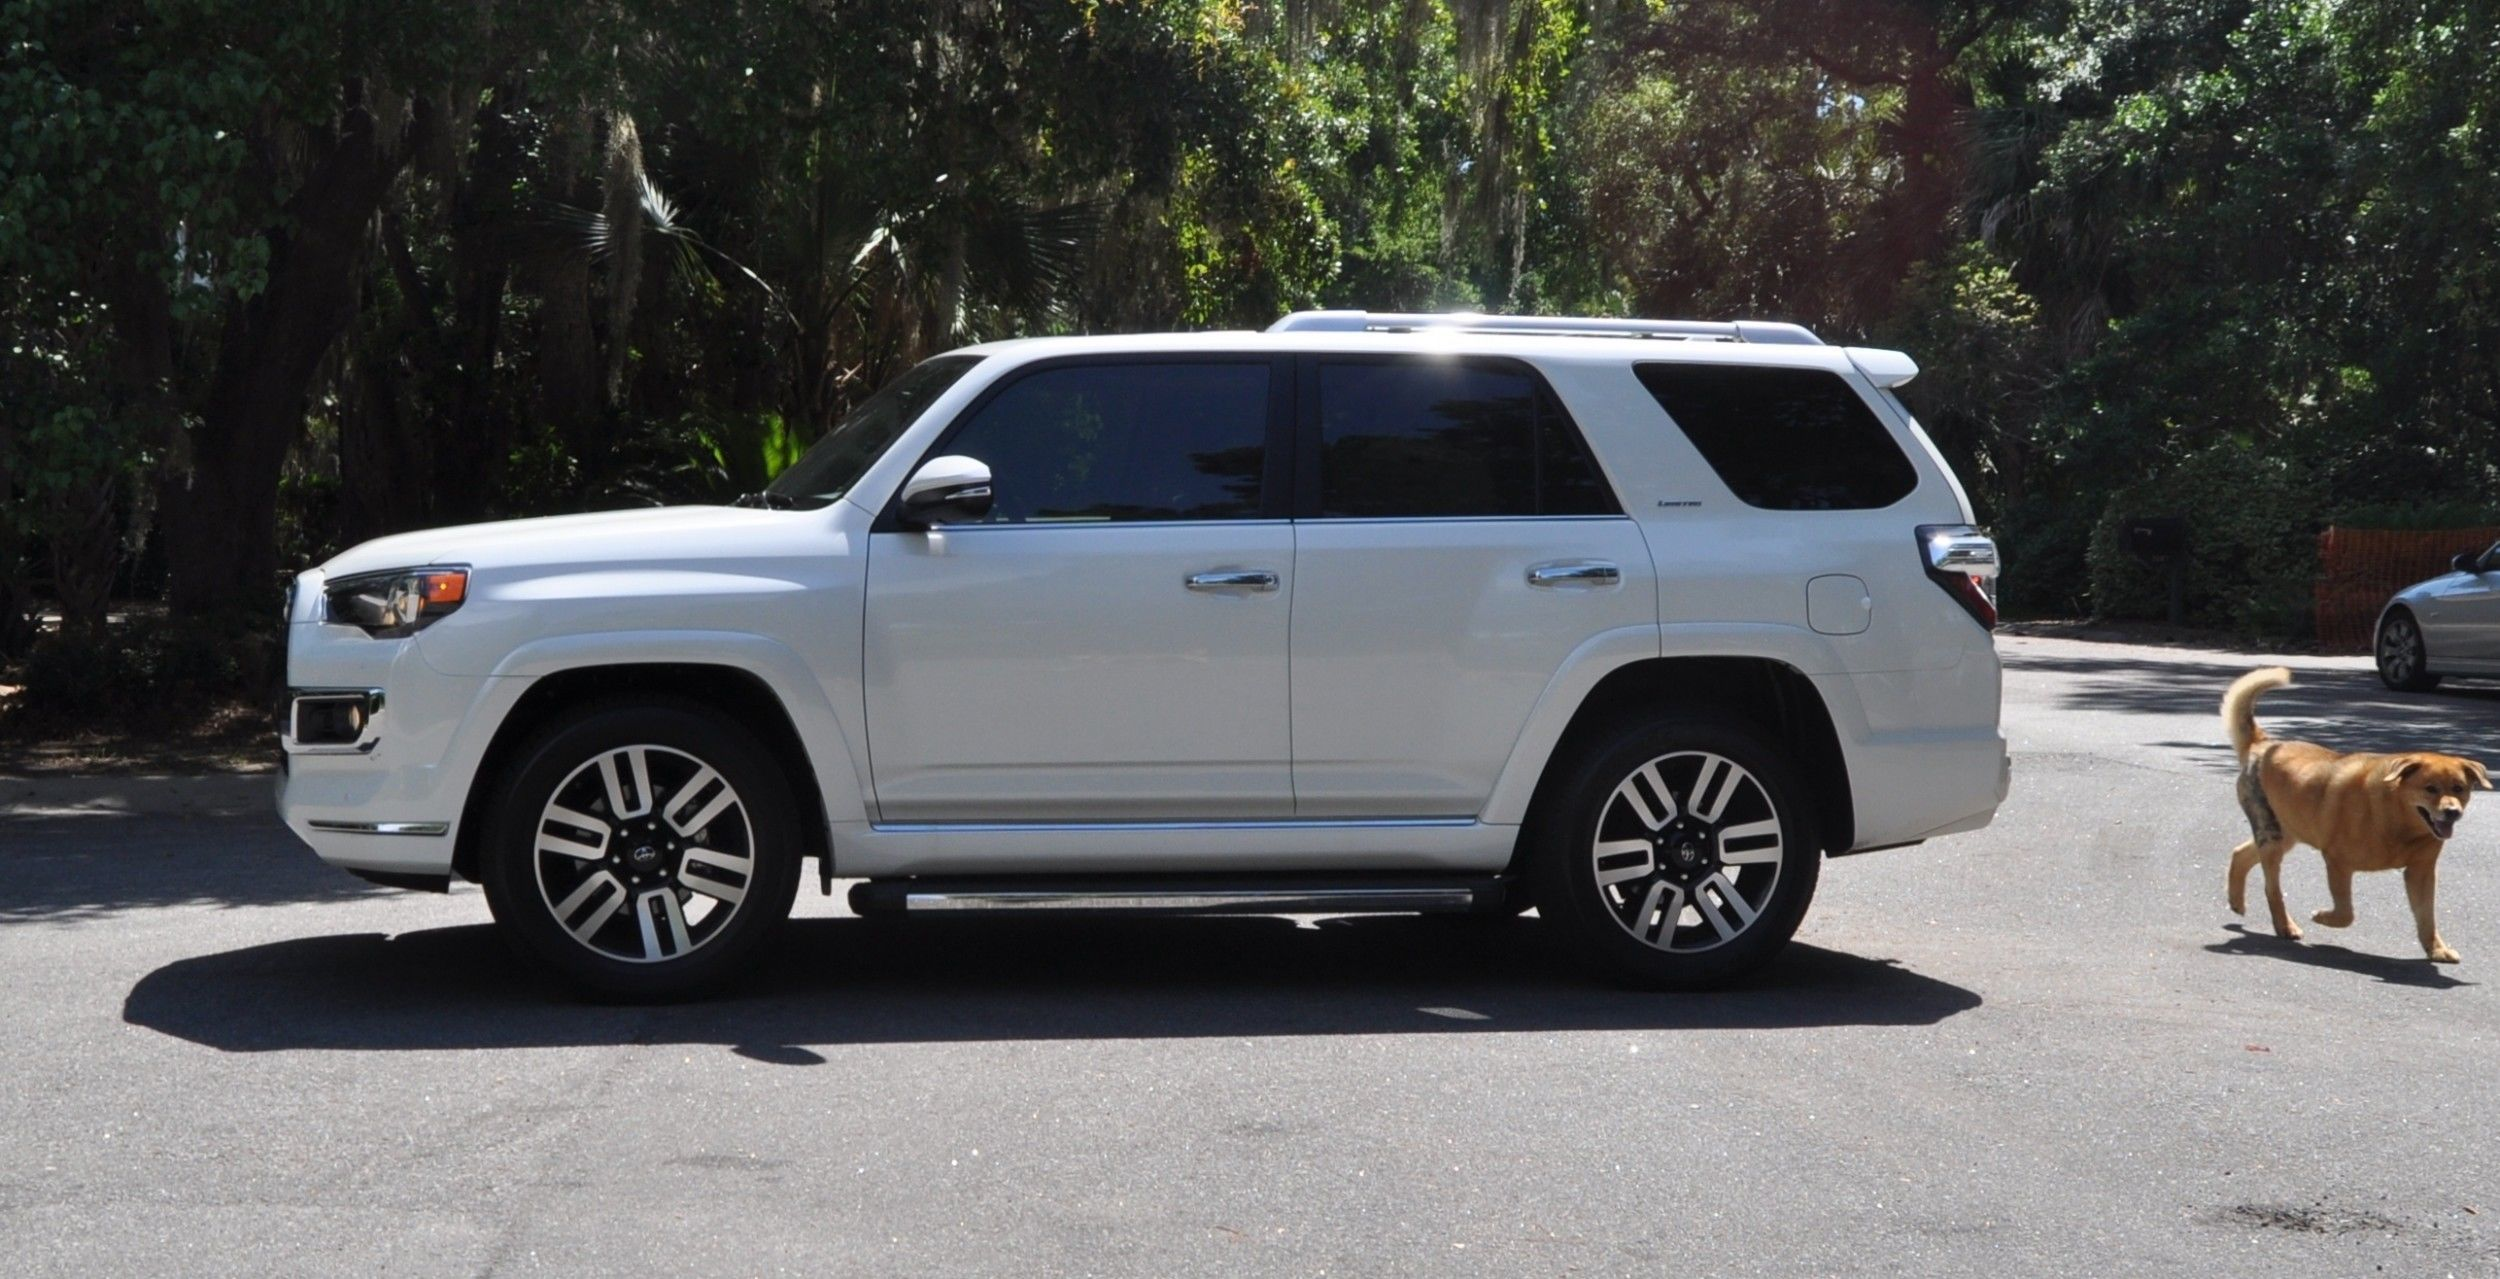 road test review 2014 toyota 4runner limited 2wd is low and sexy 29. Black Bedroom Furniture Sets. Home Design Ideas